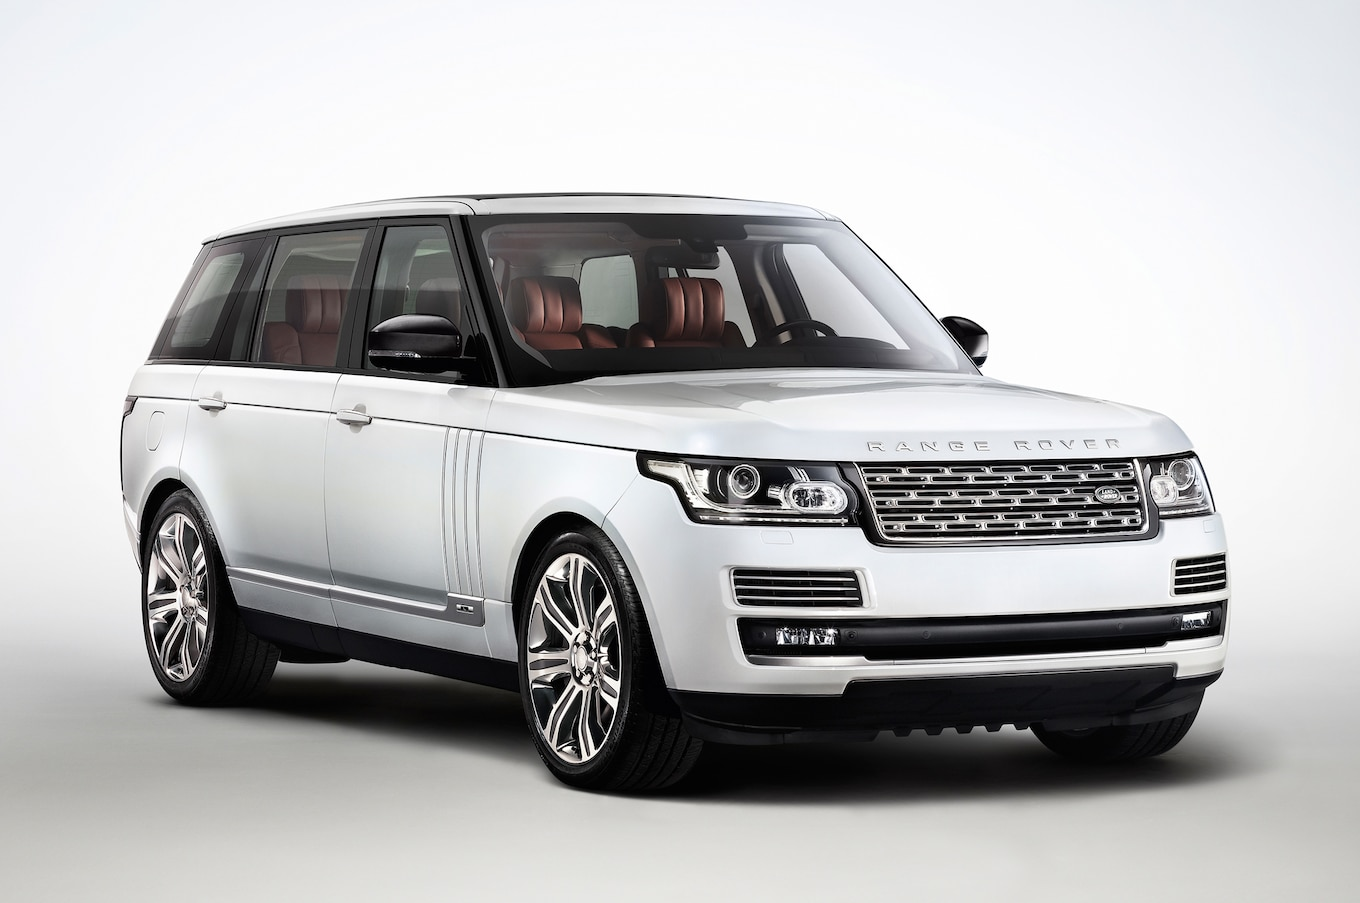 2014 Land Rover Range Rover Reviews and Rating